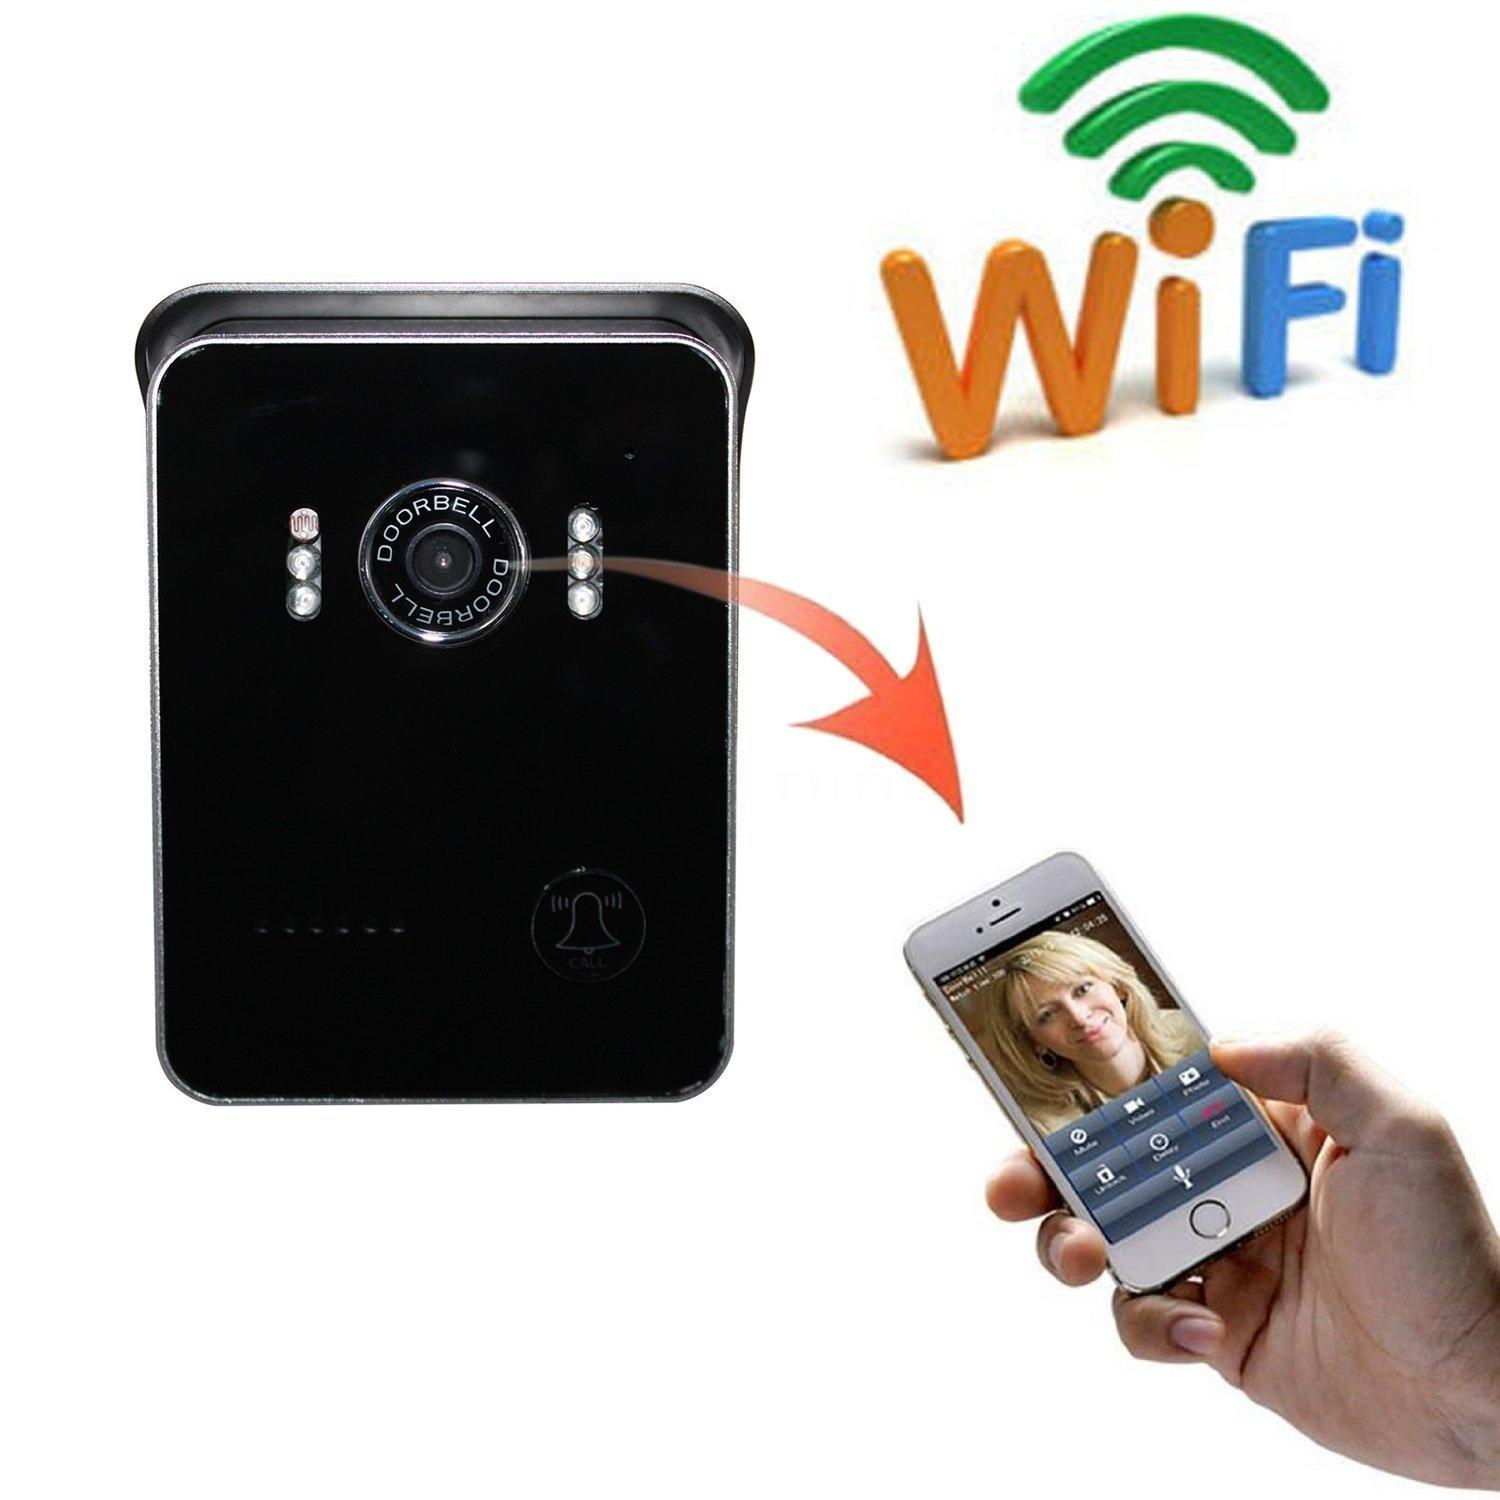 ... Visual Door Intercom Wireless Monitoring Bell Iphone Android Ipad Tablet Smartphone Monitor Peephole C Digital Security Camera Digital Security Cameras ...  sc 1 st  DHgate.com & New 2016 Wifi Video Smart Doorbell Ip Visual Door Intercom ... pezcame.com